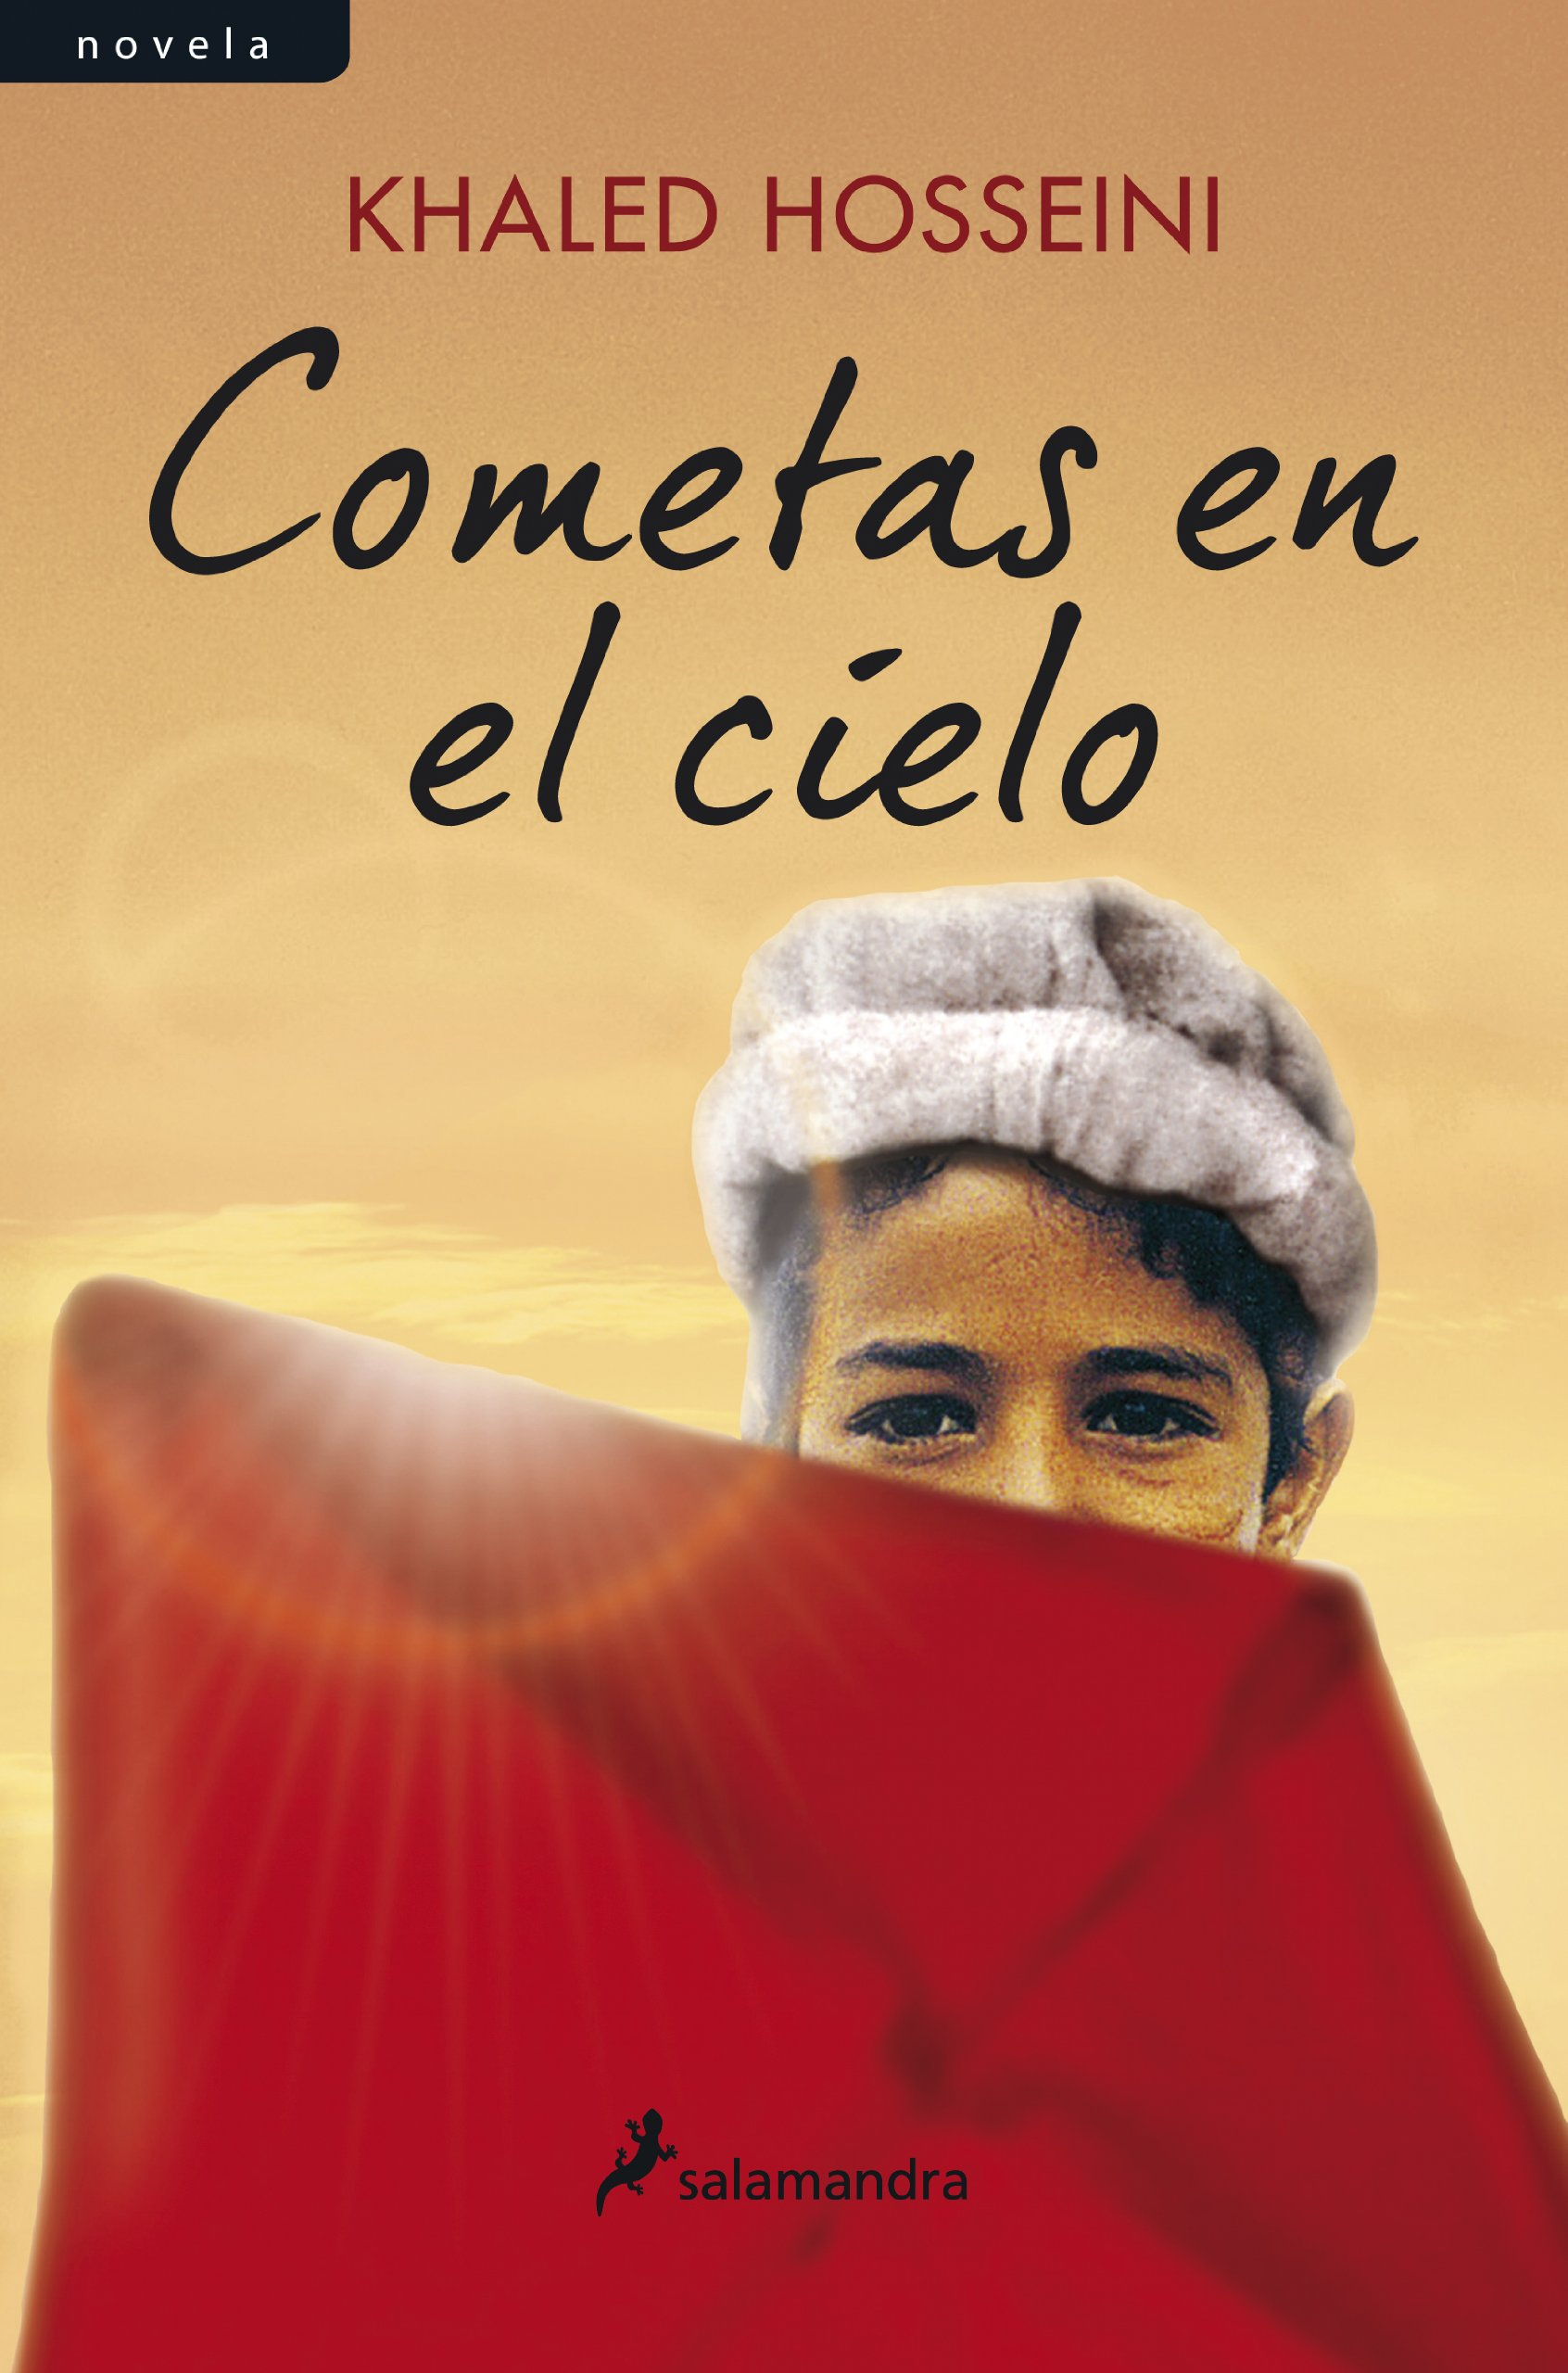 Buy Cometas en el cielo Book Online at Low Prices in India | Cometas en el  cielo Reviews & Ratings - Amazon.in